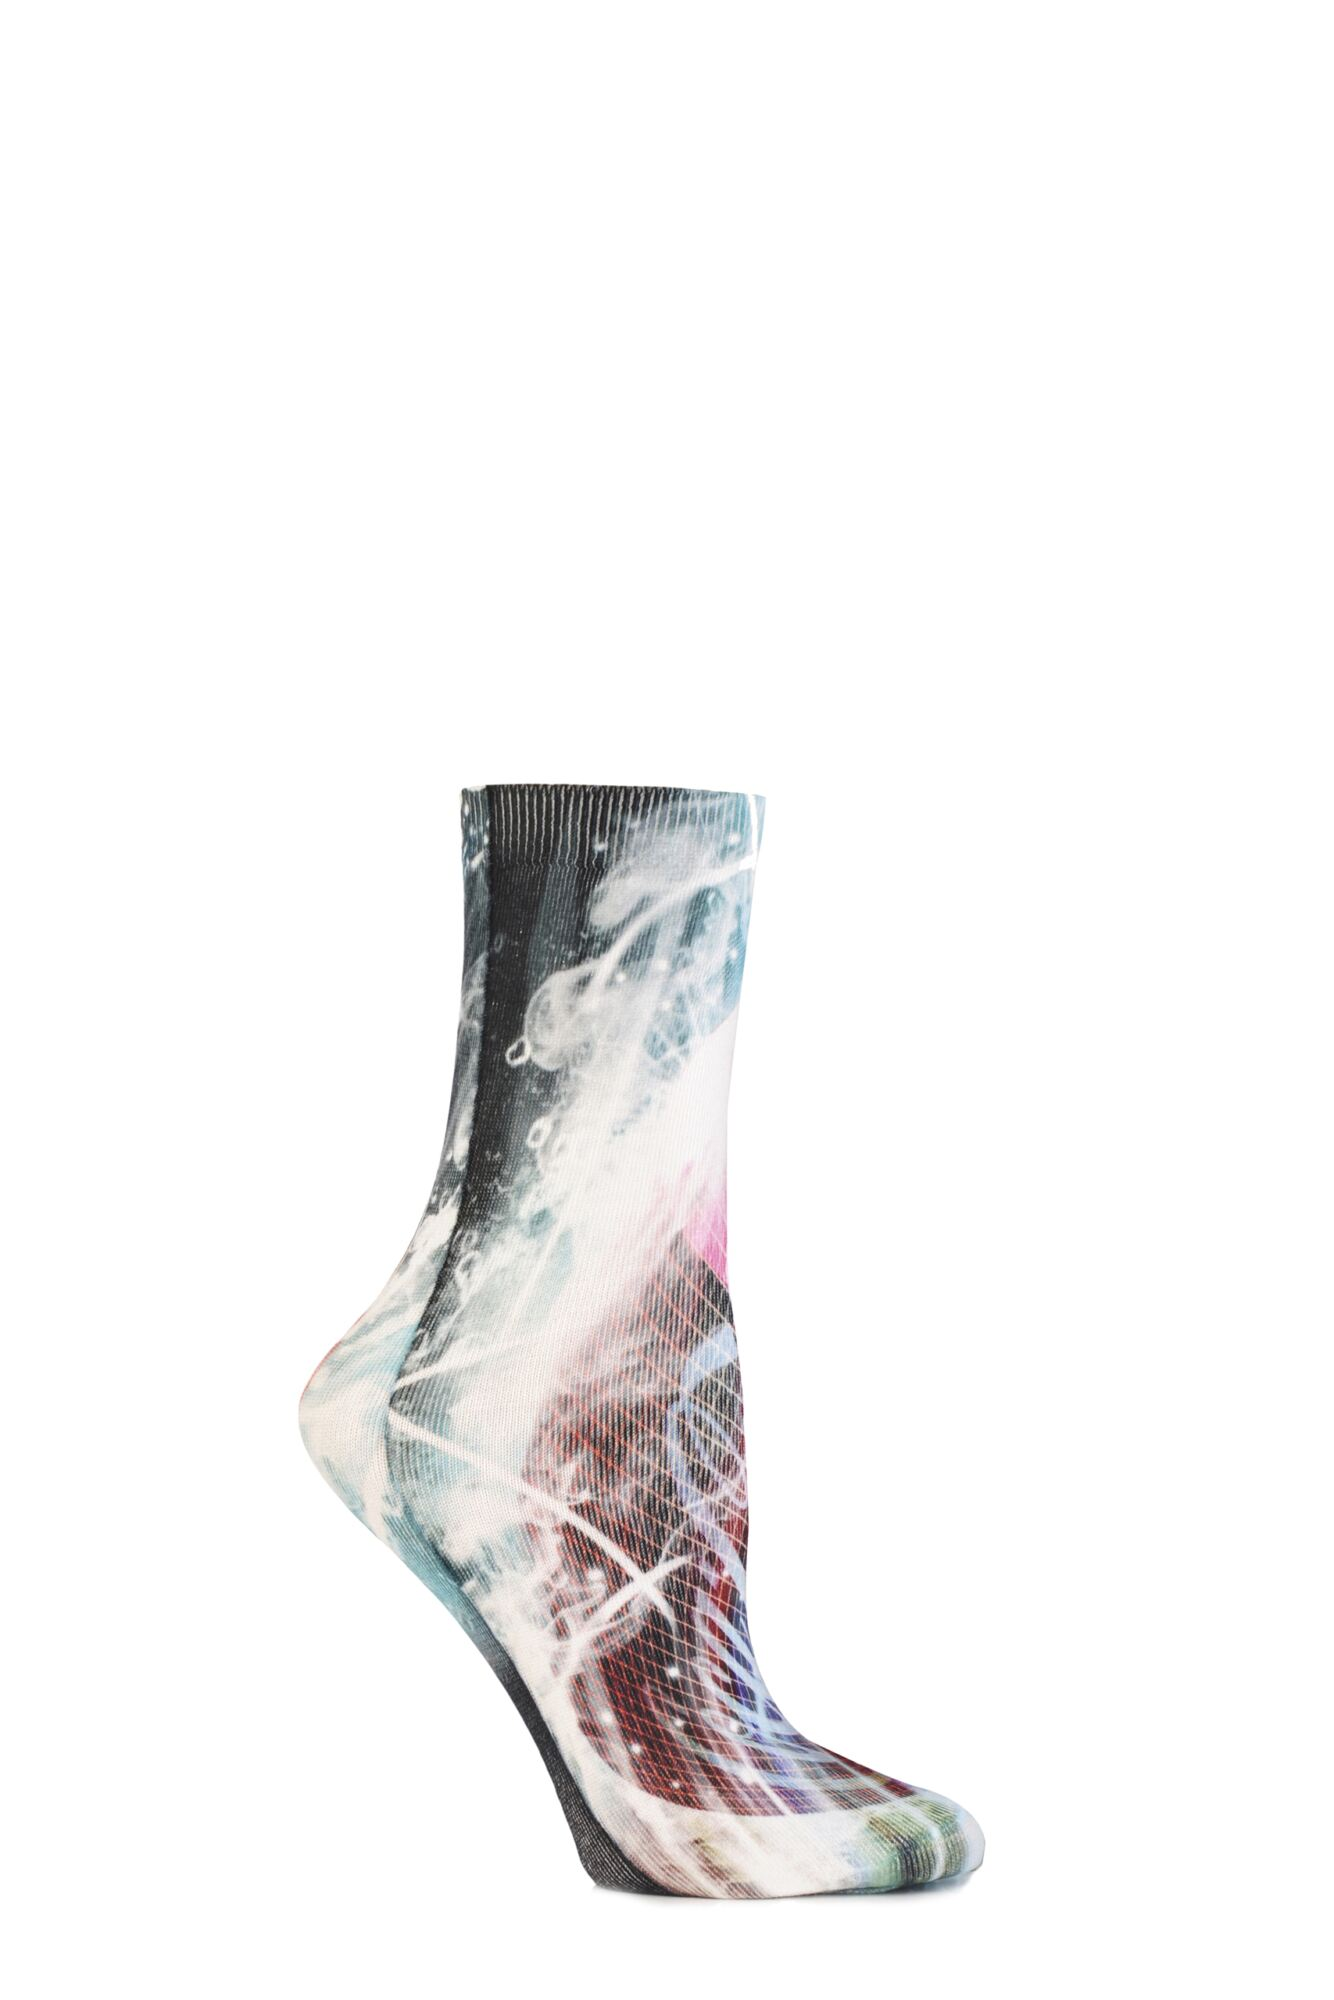 1 Pair HD Printed Socks Ladies - Coca Cola